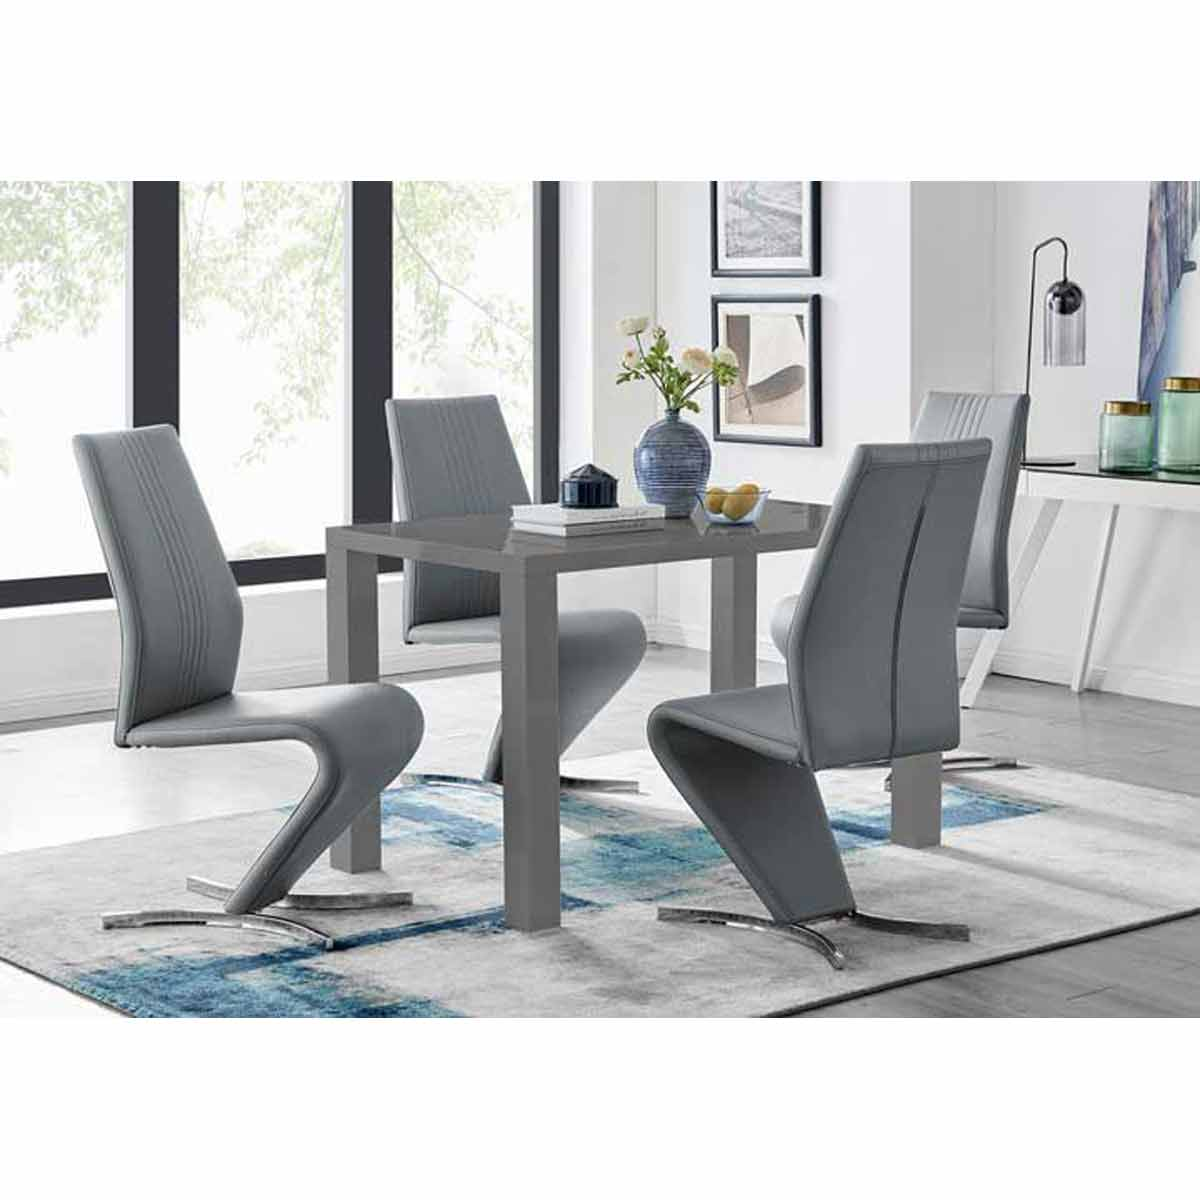 Furniture Box Pivero Grey High Gloss Dining Table and 4 Luxury Elephant Grey Willow Chairs Set